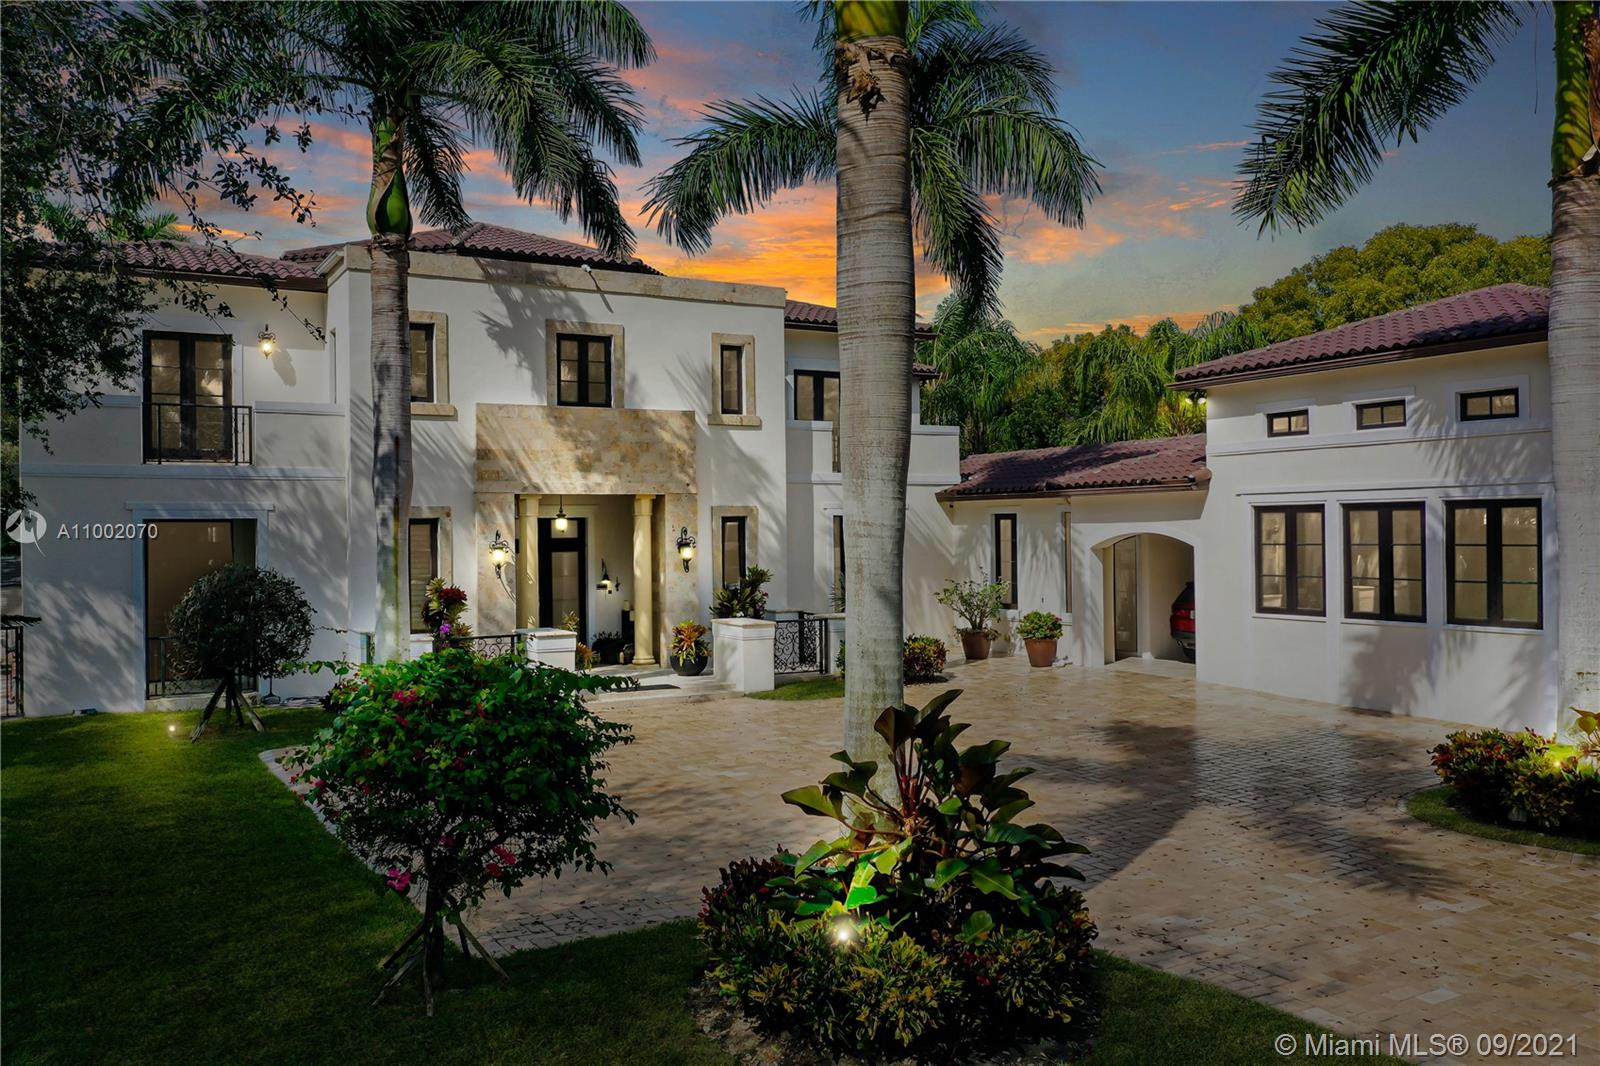 A stunning Mediterranean  Single Family Home is like a dream come true. Located in Pinecrest premier neighborhood, favorite place to live for many professional sport players!! This magnificent property has 6 Bedrooms/5.5 Bathrooms, one (1) acre lot, marble floors throughout & wood floors in all bedrooms, and built-in wood closets. The open kitchen floor plan has wood cabinetry, top-of-the-line stainless steel appliances, and ample breakfast area calls for family breakfast/brunches. And as if that were not enough, this hidden gem offers a full outdoor kitchen overlooking the lush garden, heated pool with spa, and private basketball court all great for family & friends gatherings. Stop looking for your perfect house & make this one your memorable HOME!